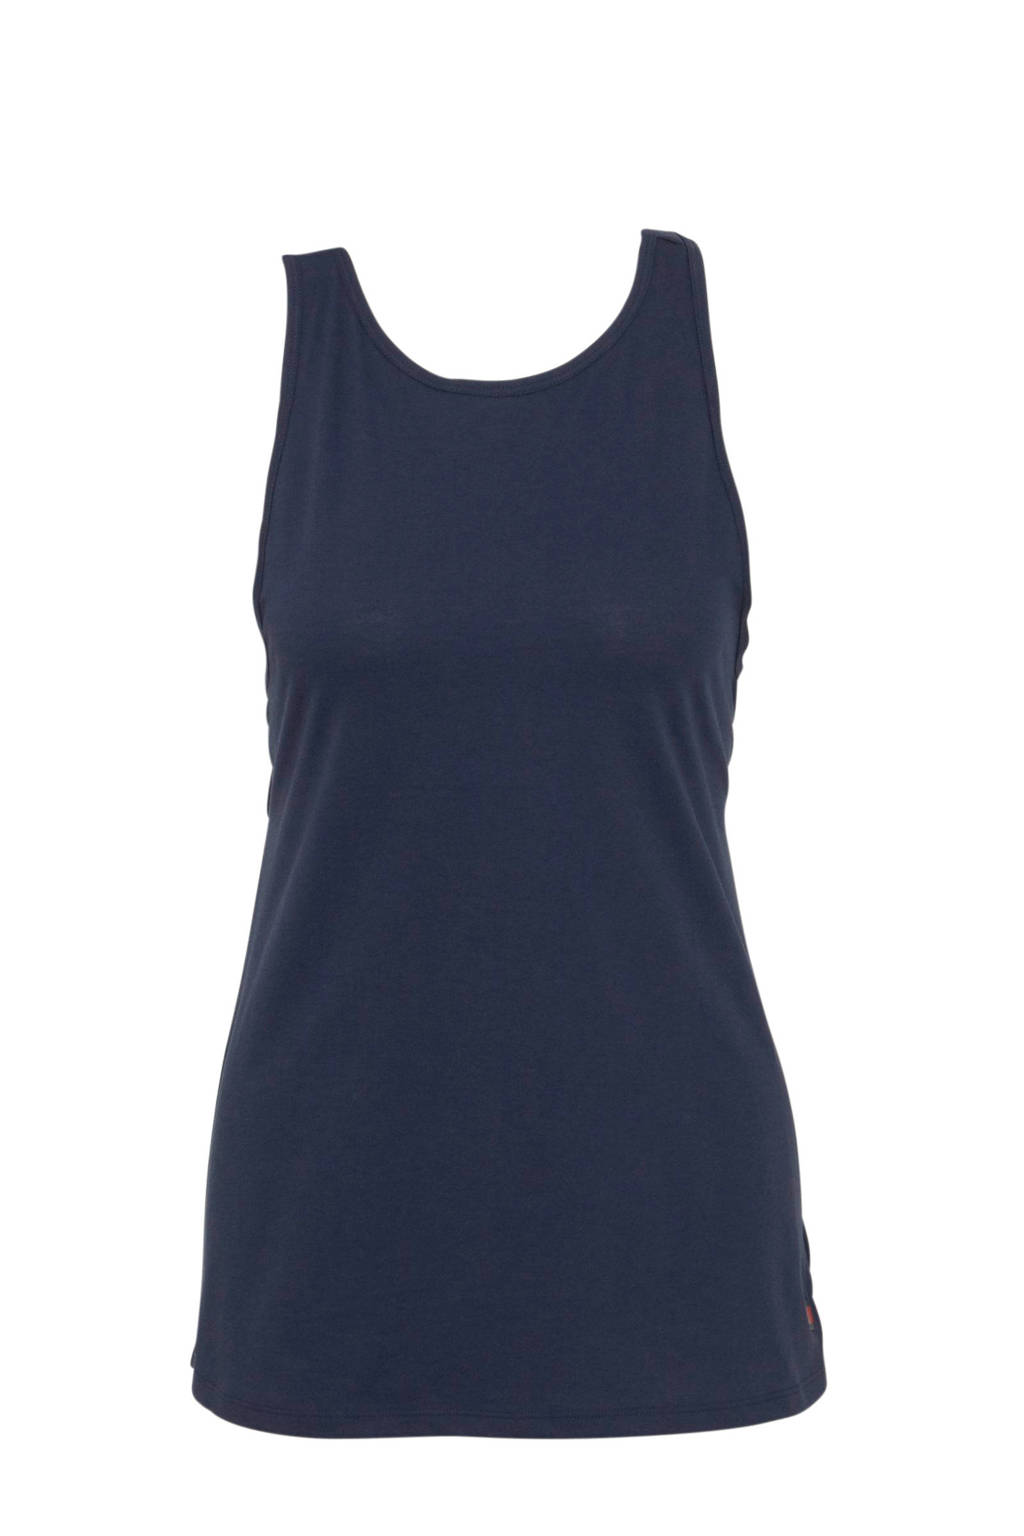 Tommy Sport tanktop donkerblauw/rood//wit, Donkerblauw/rood/wit